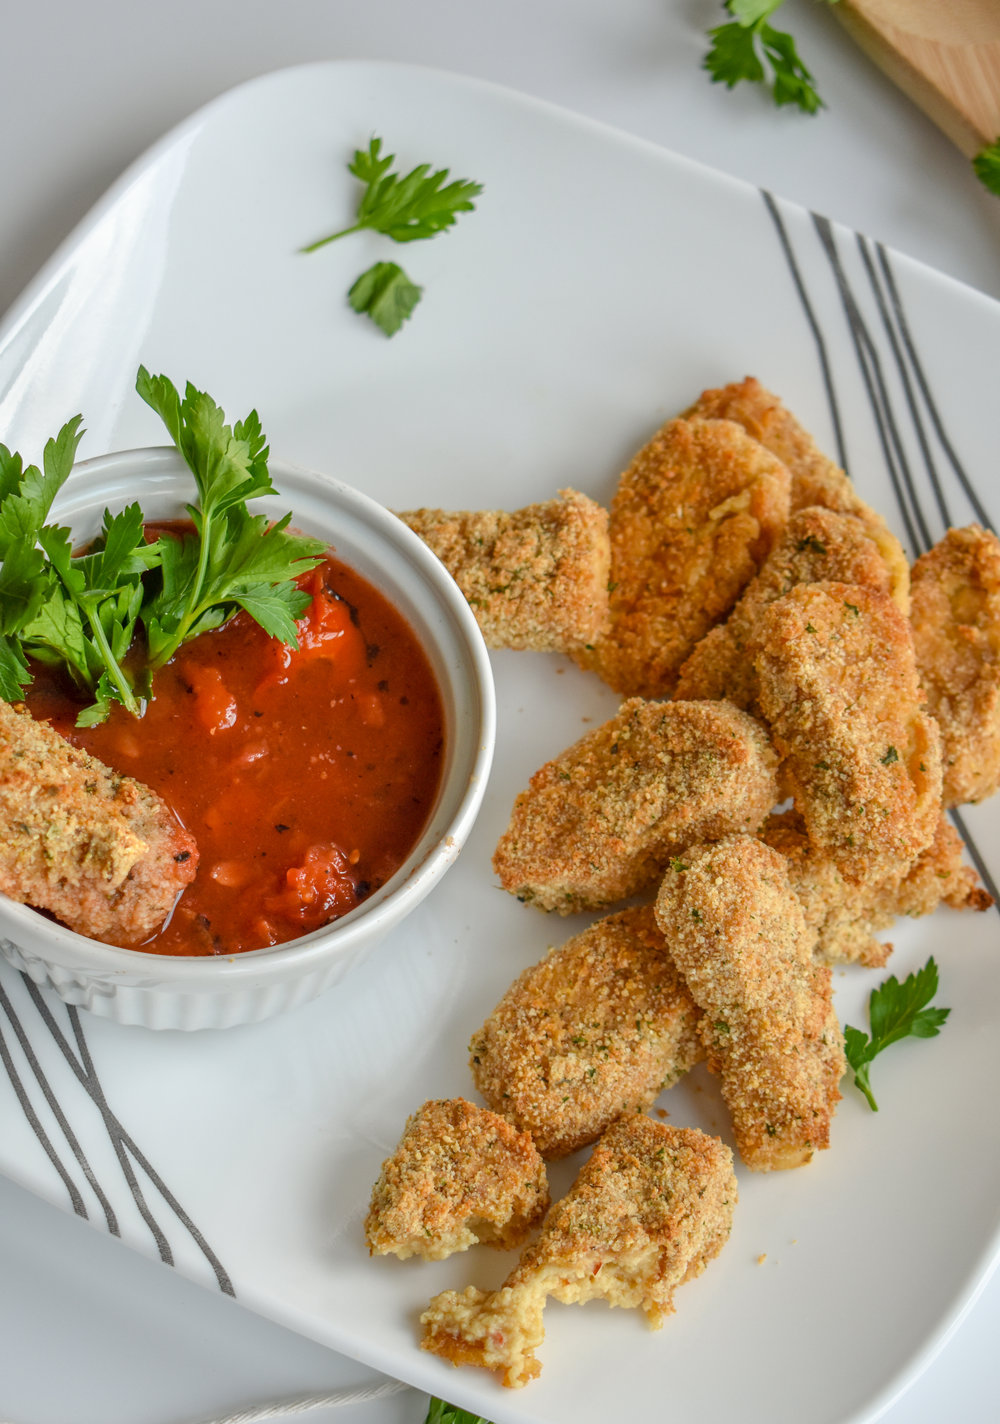 10. Serve the mozzarella sticks with a tomato sauce for dipping. Yum!